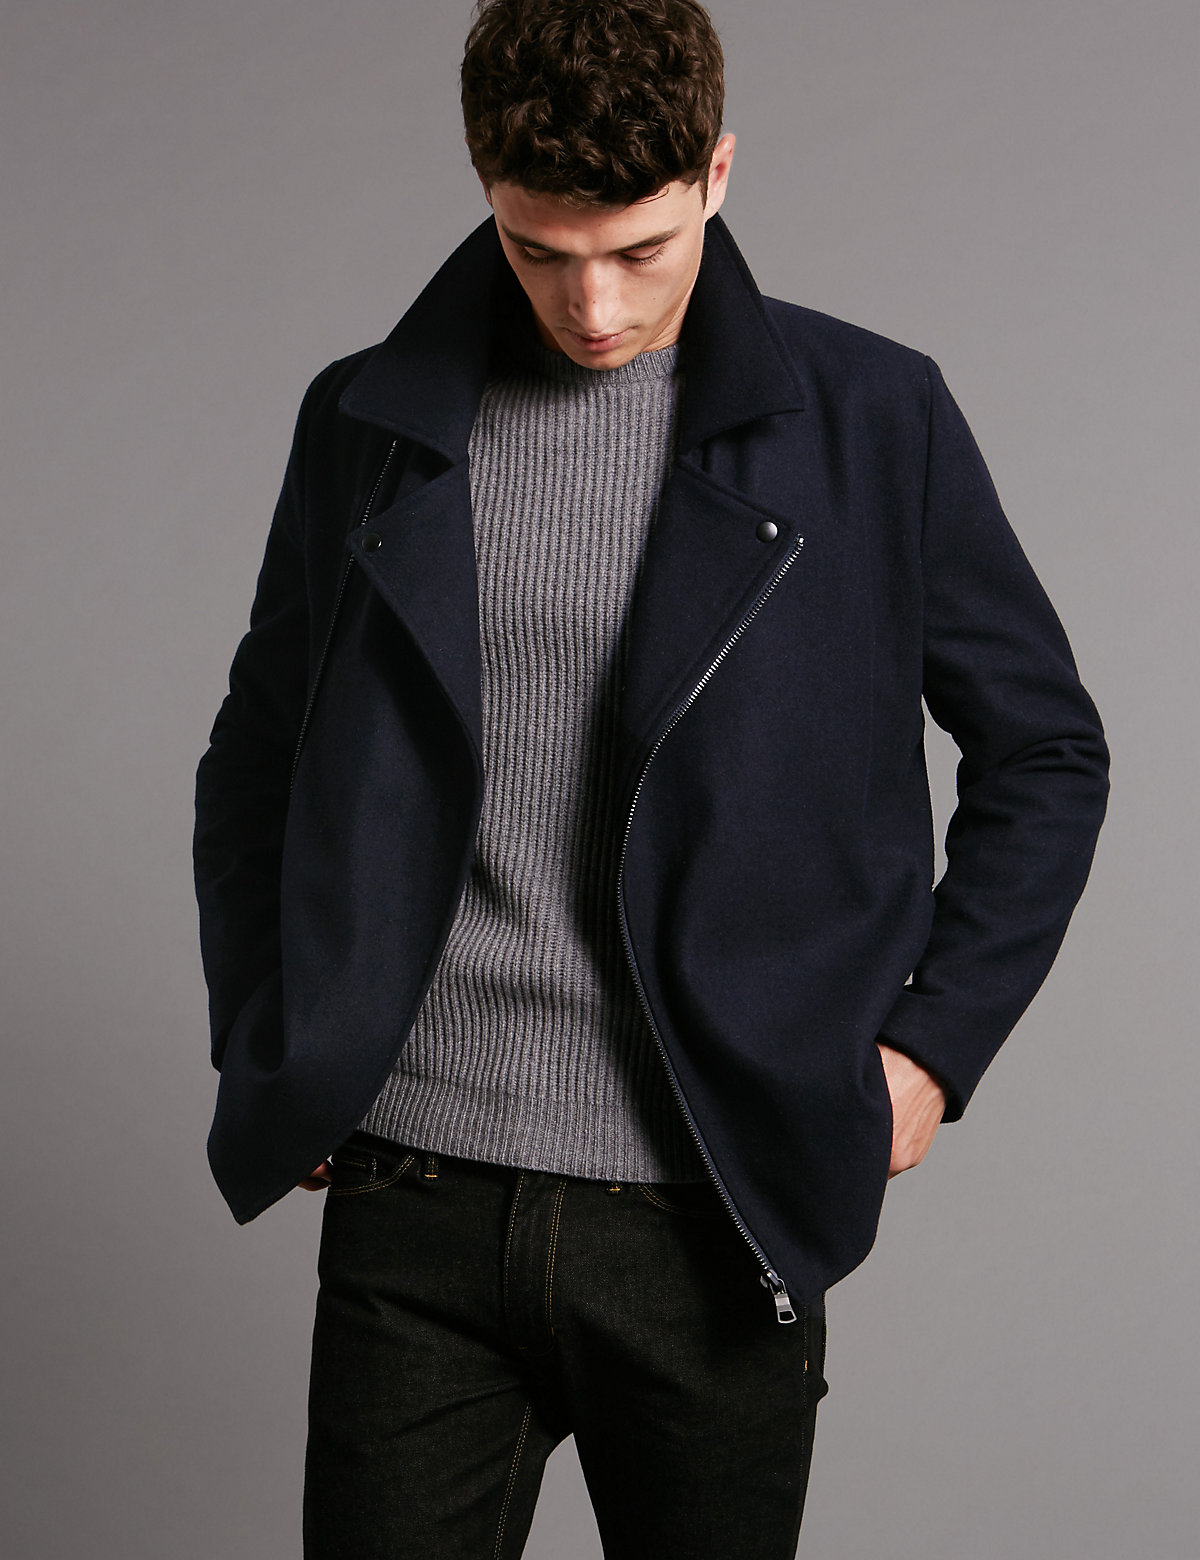 Image of Autograph Wool Blend Tailored Fit Asymmetric Peacoat